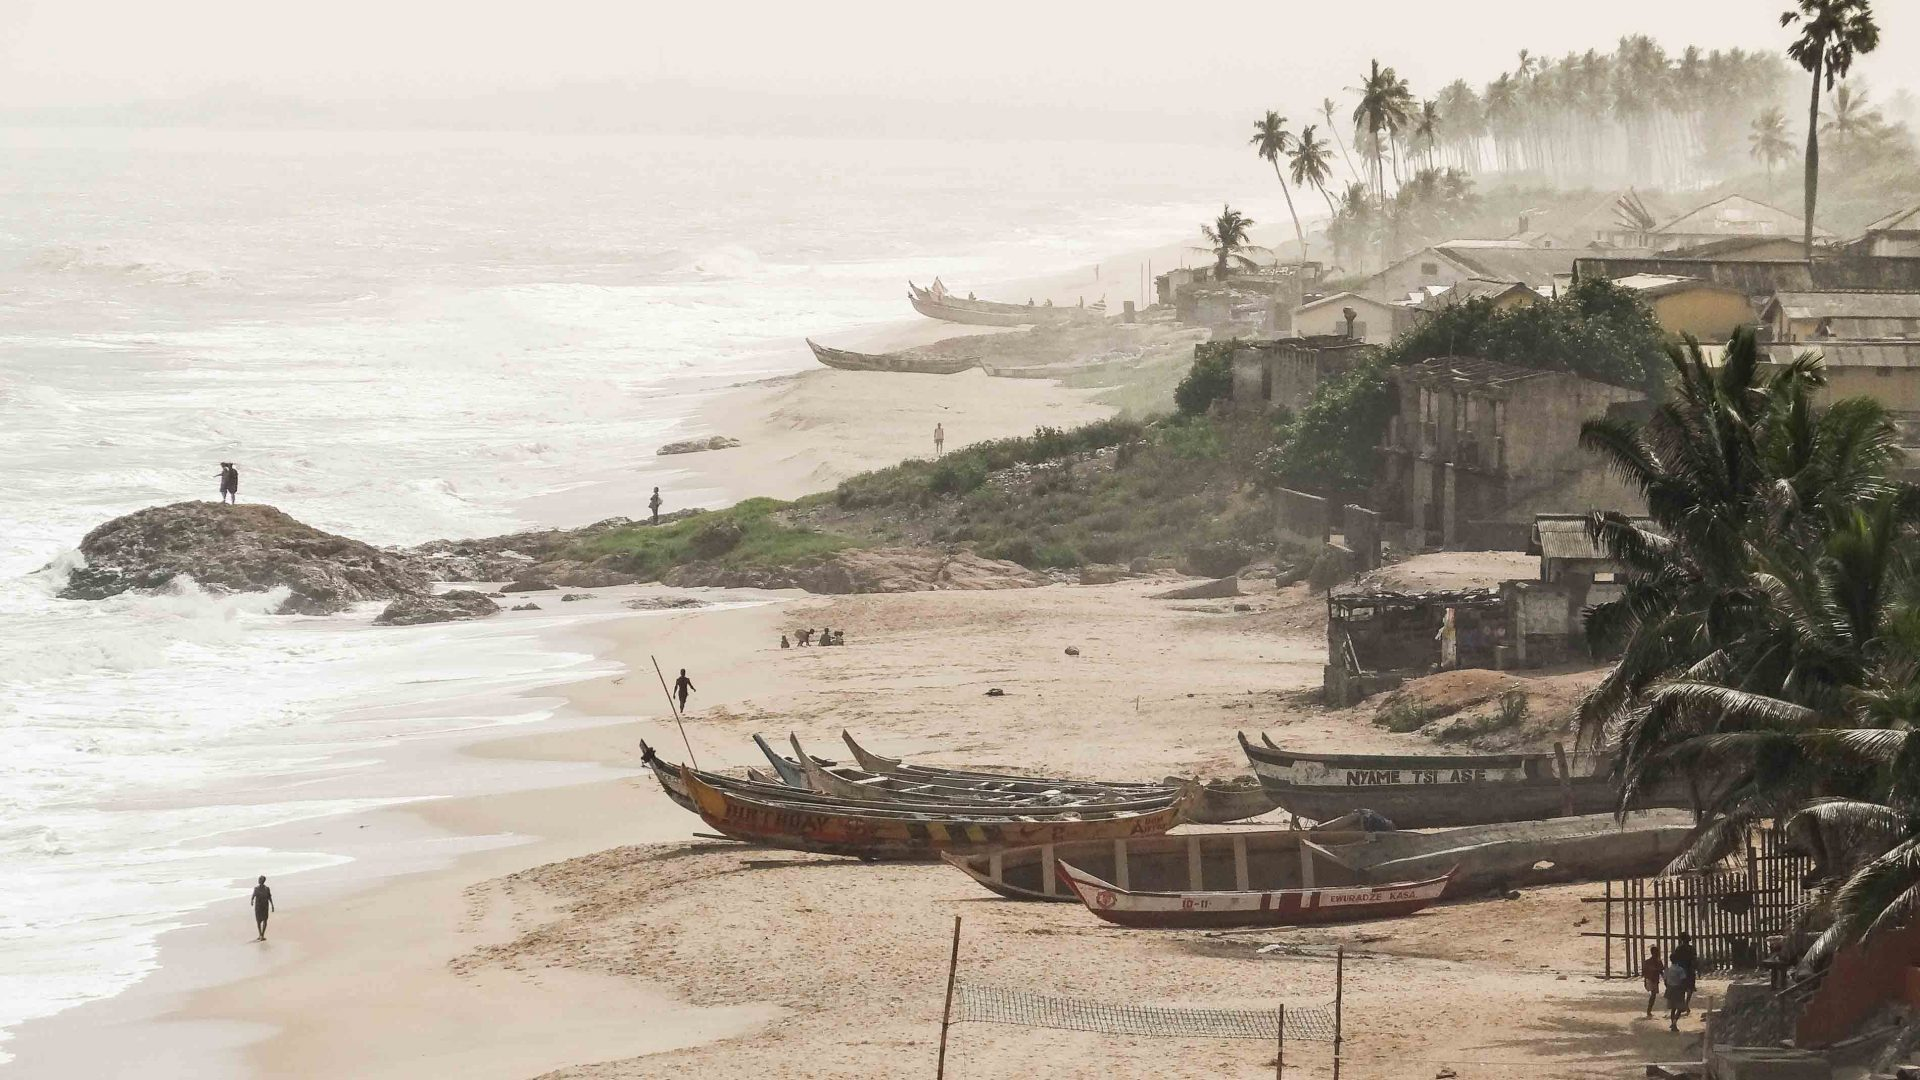 The coastline in Ghana.